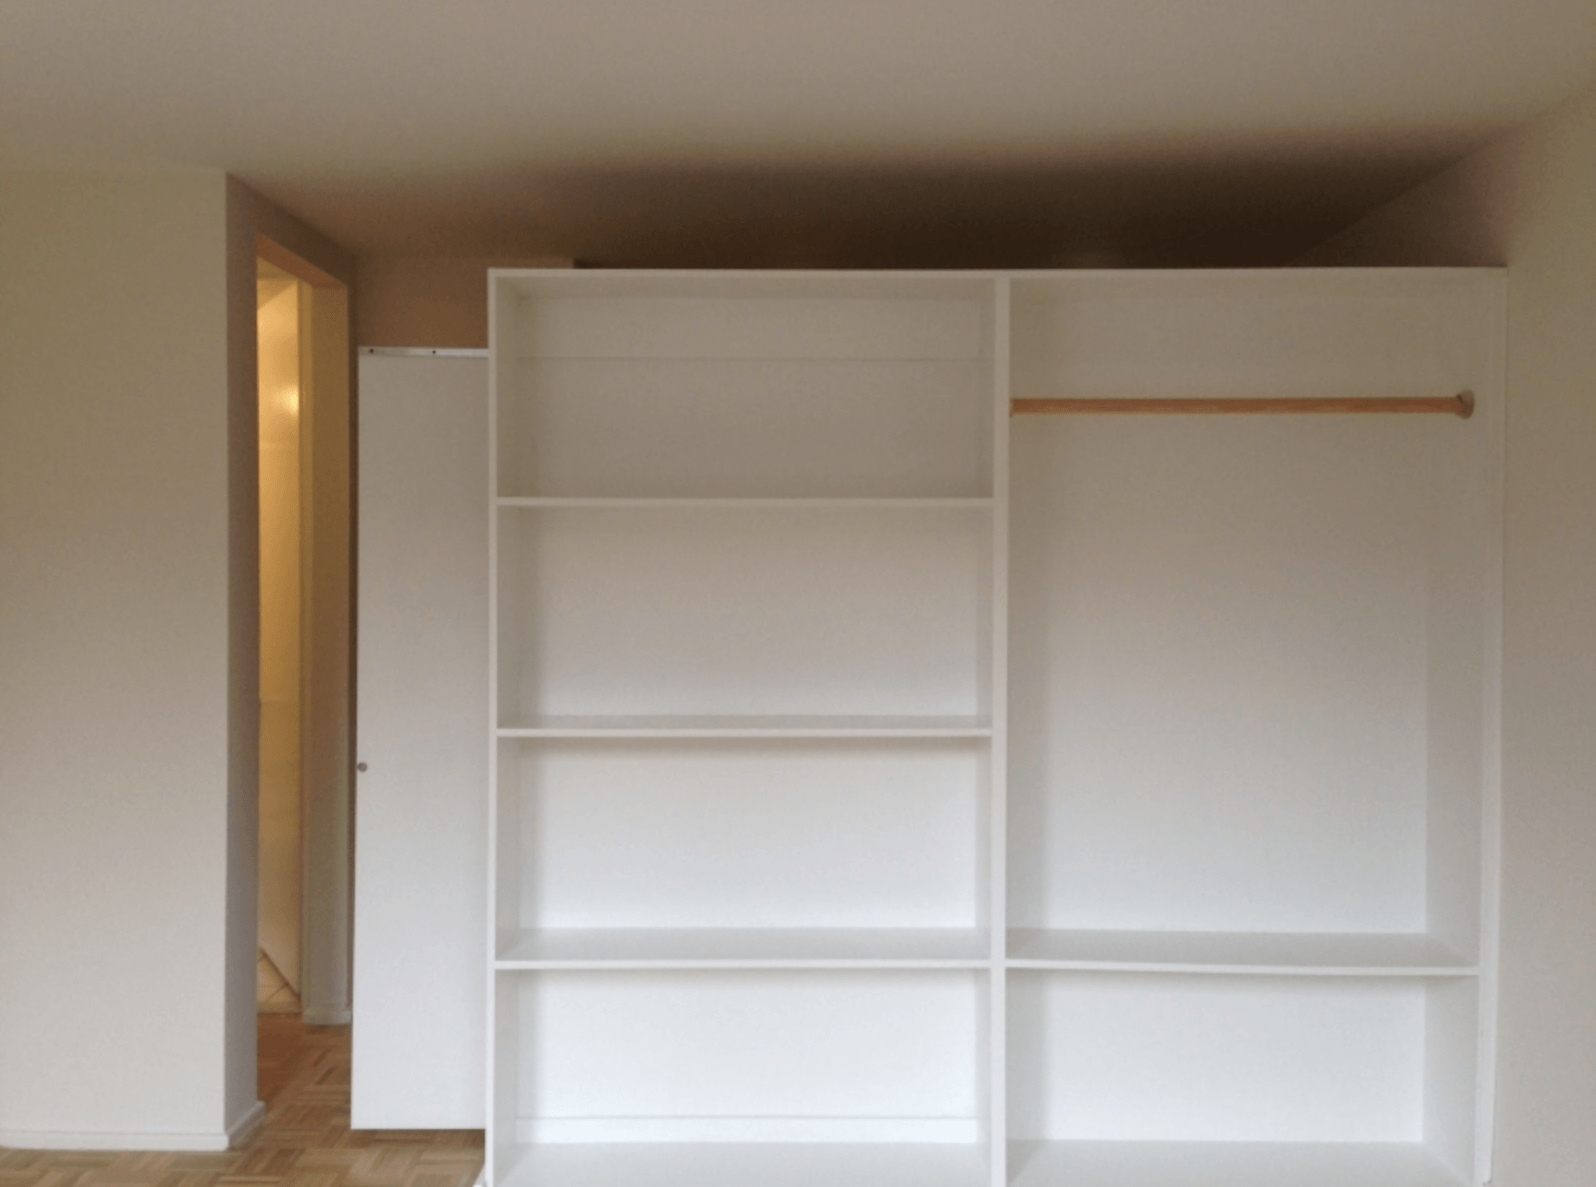 8 Bookshelf Walls You Can Live With Legally